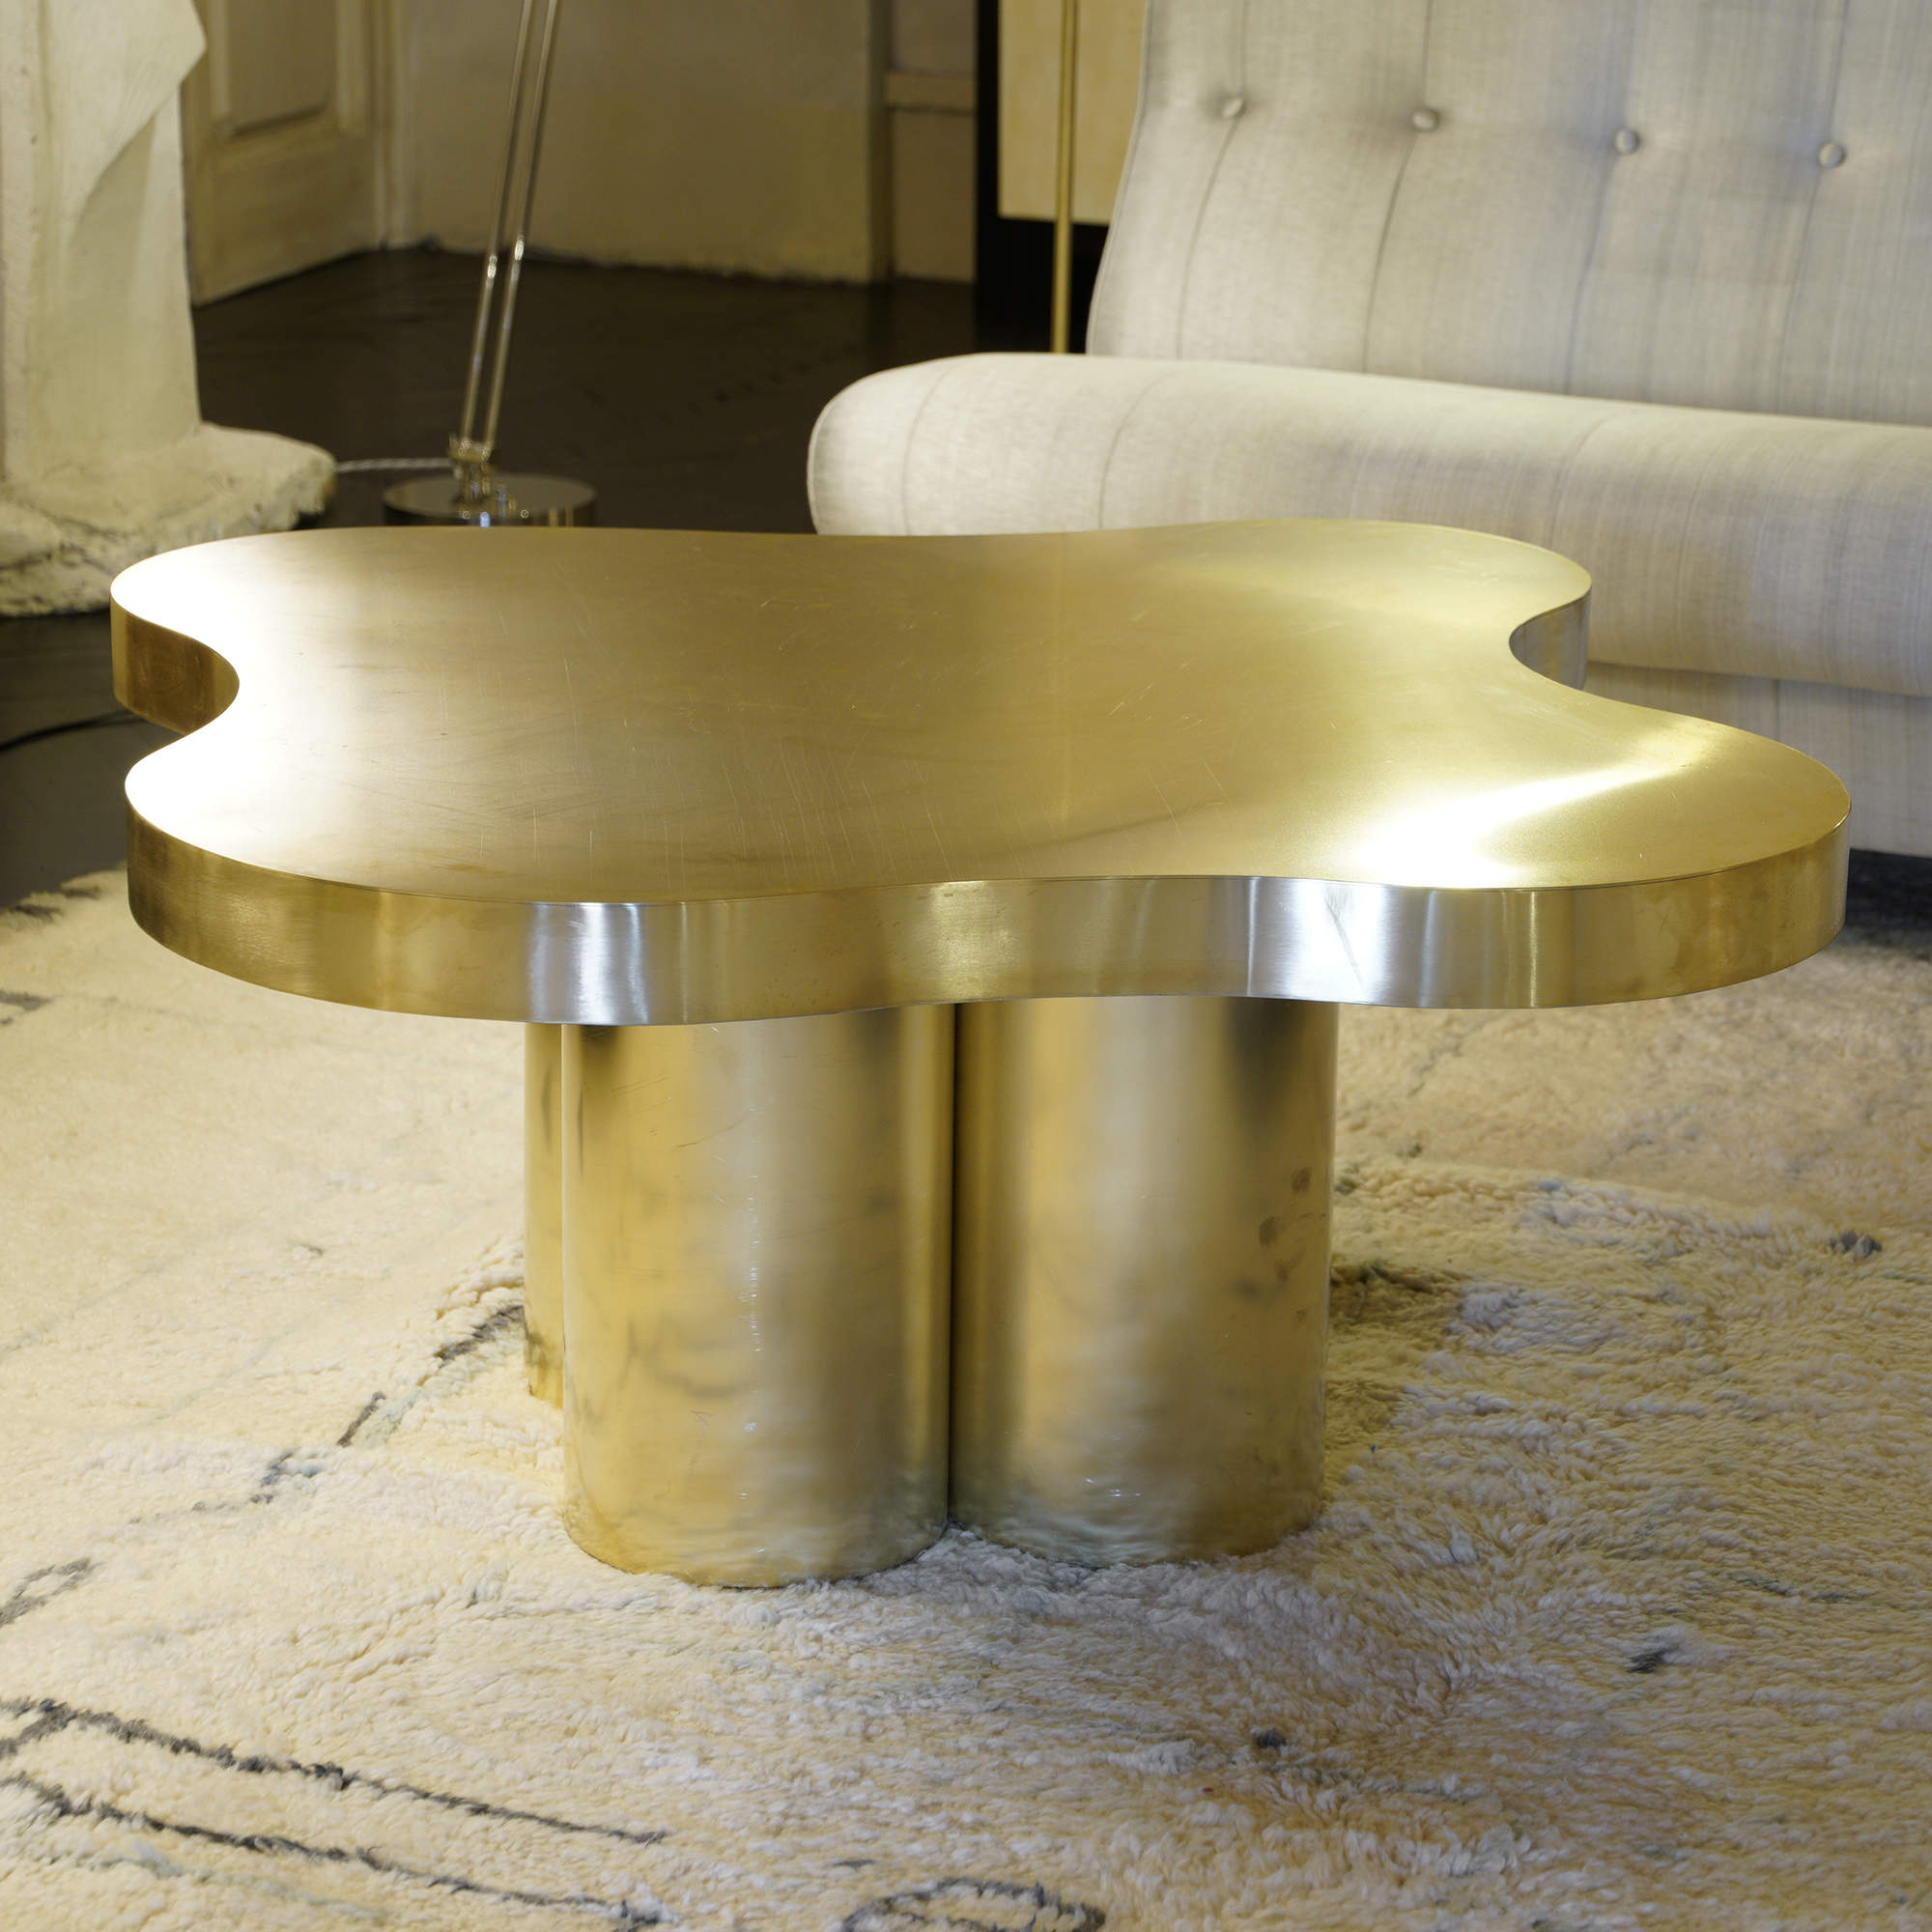 Flair Edition Free-Form High Coffee Table in Natural Brass, Italy 2019